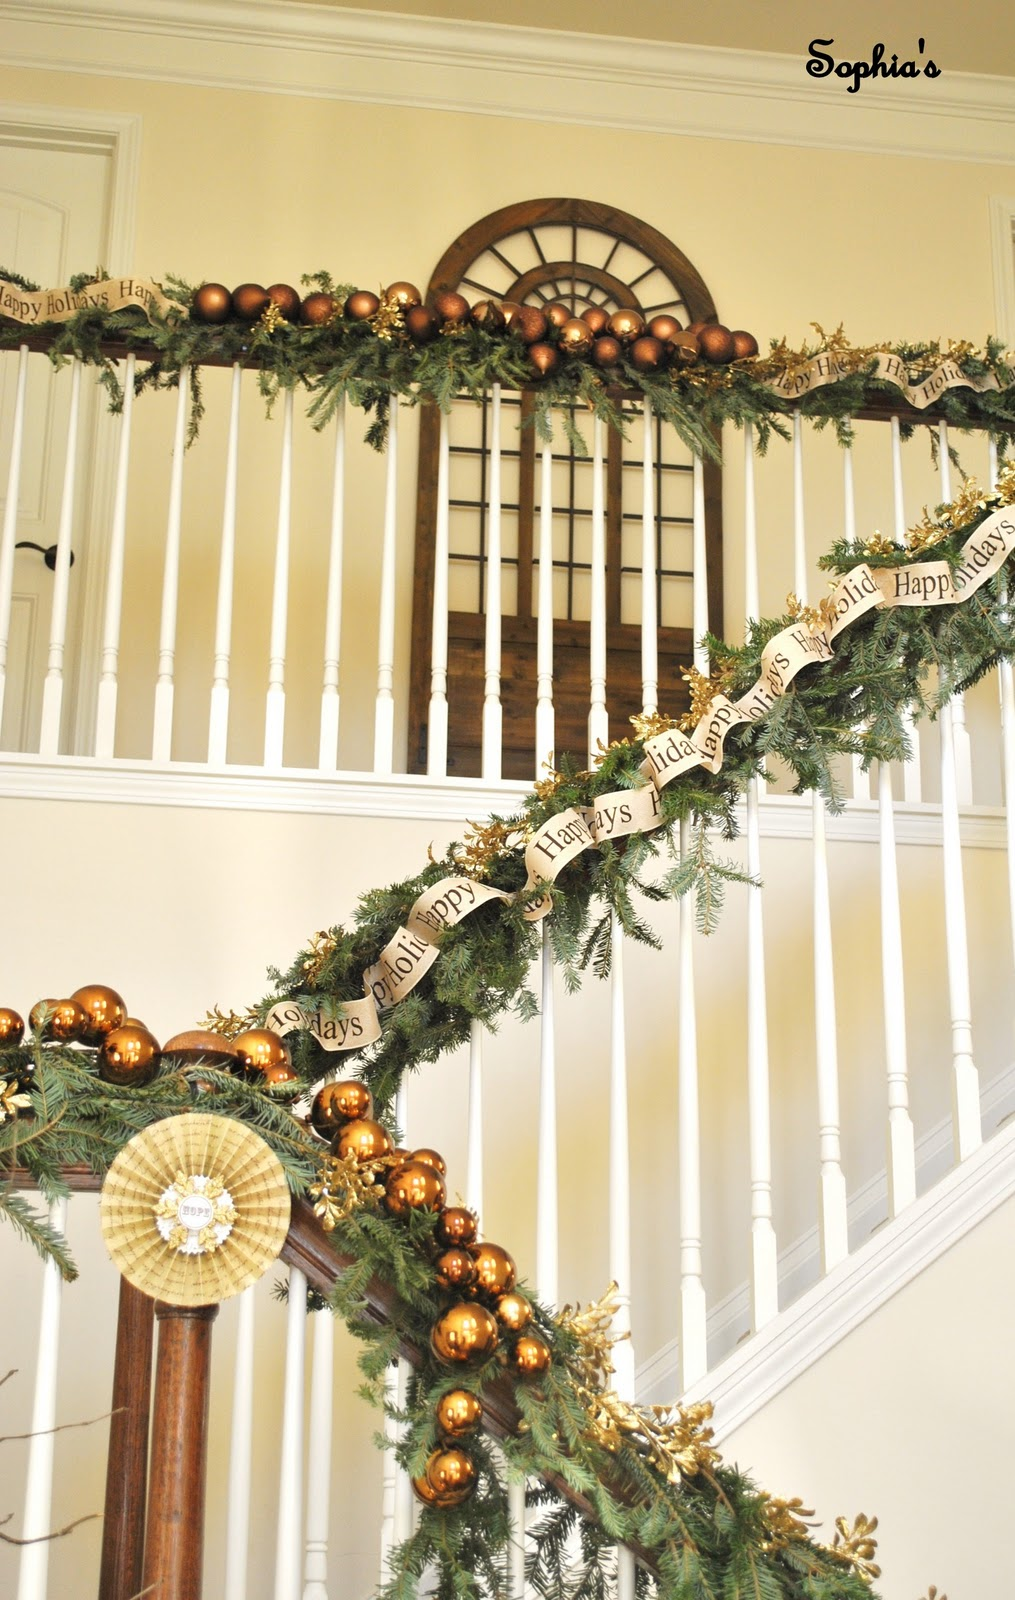 Sophia 39 s christmas stairs for Stair railing decorated for christmas